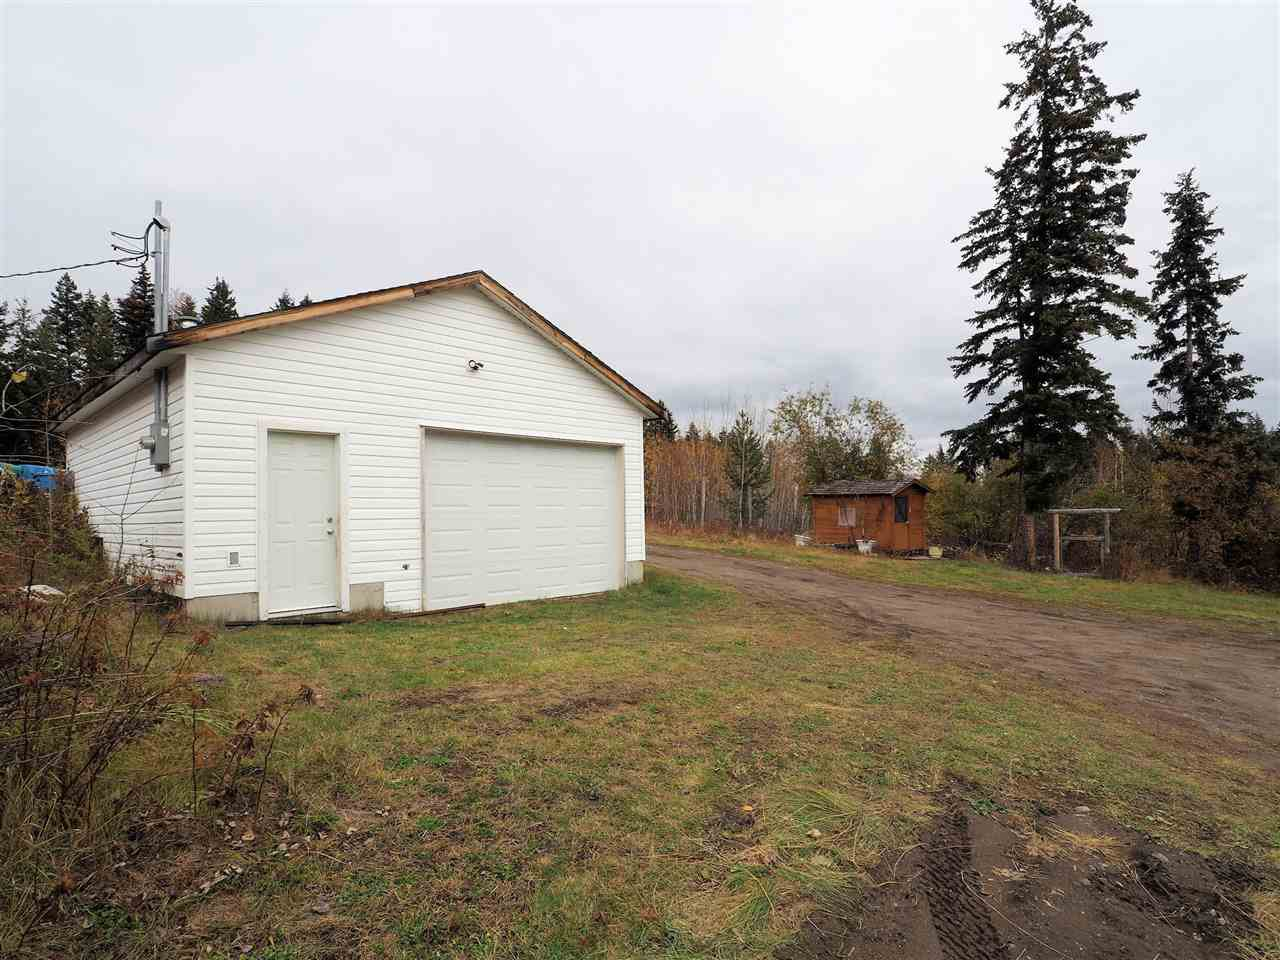 Photo 3: Photos: 6314 SPURAWAY Drive: Forest Grove House for sale (100 Mile House (Zone 10))  : MLS®# R2433467